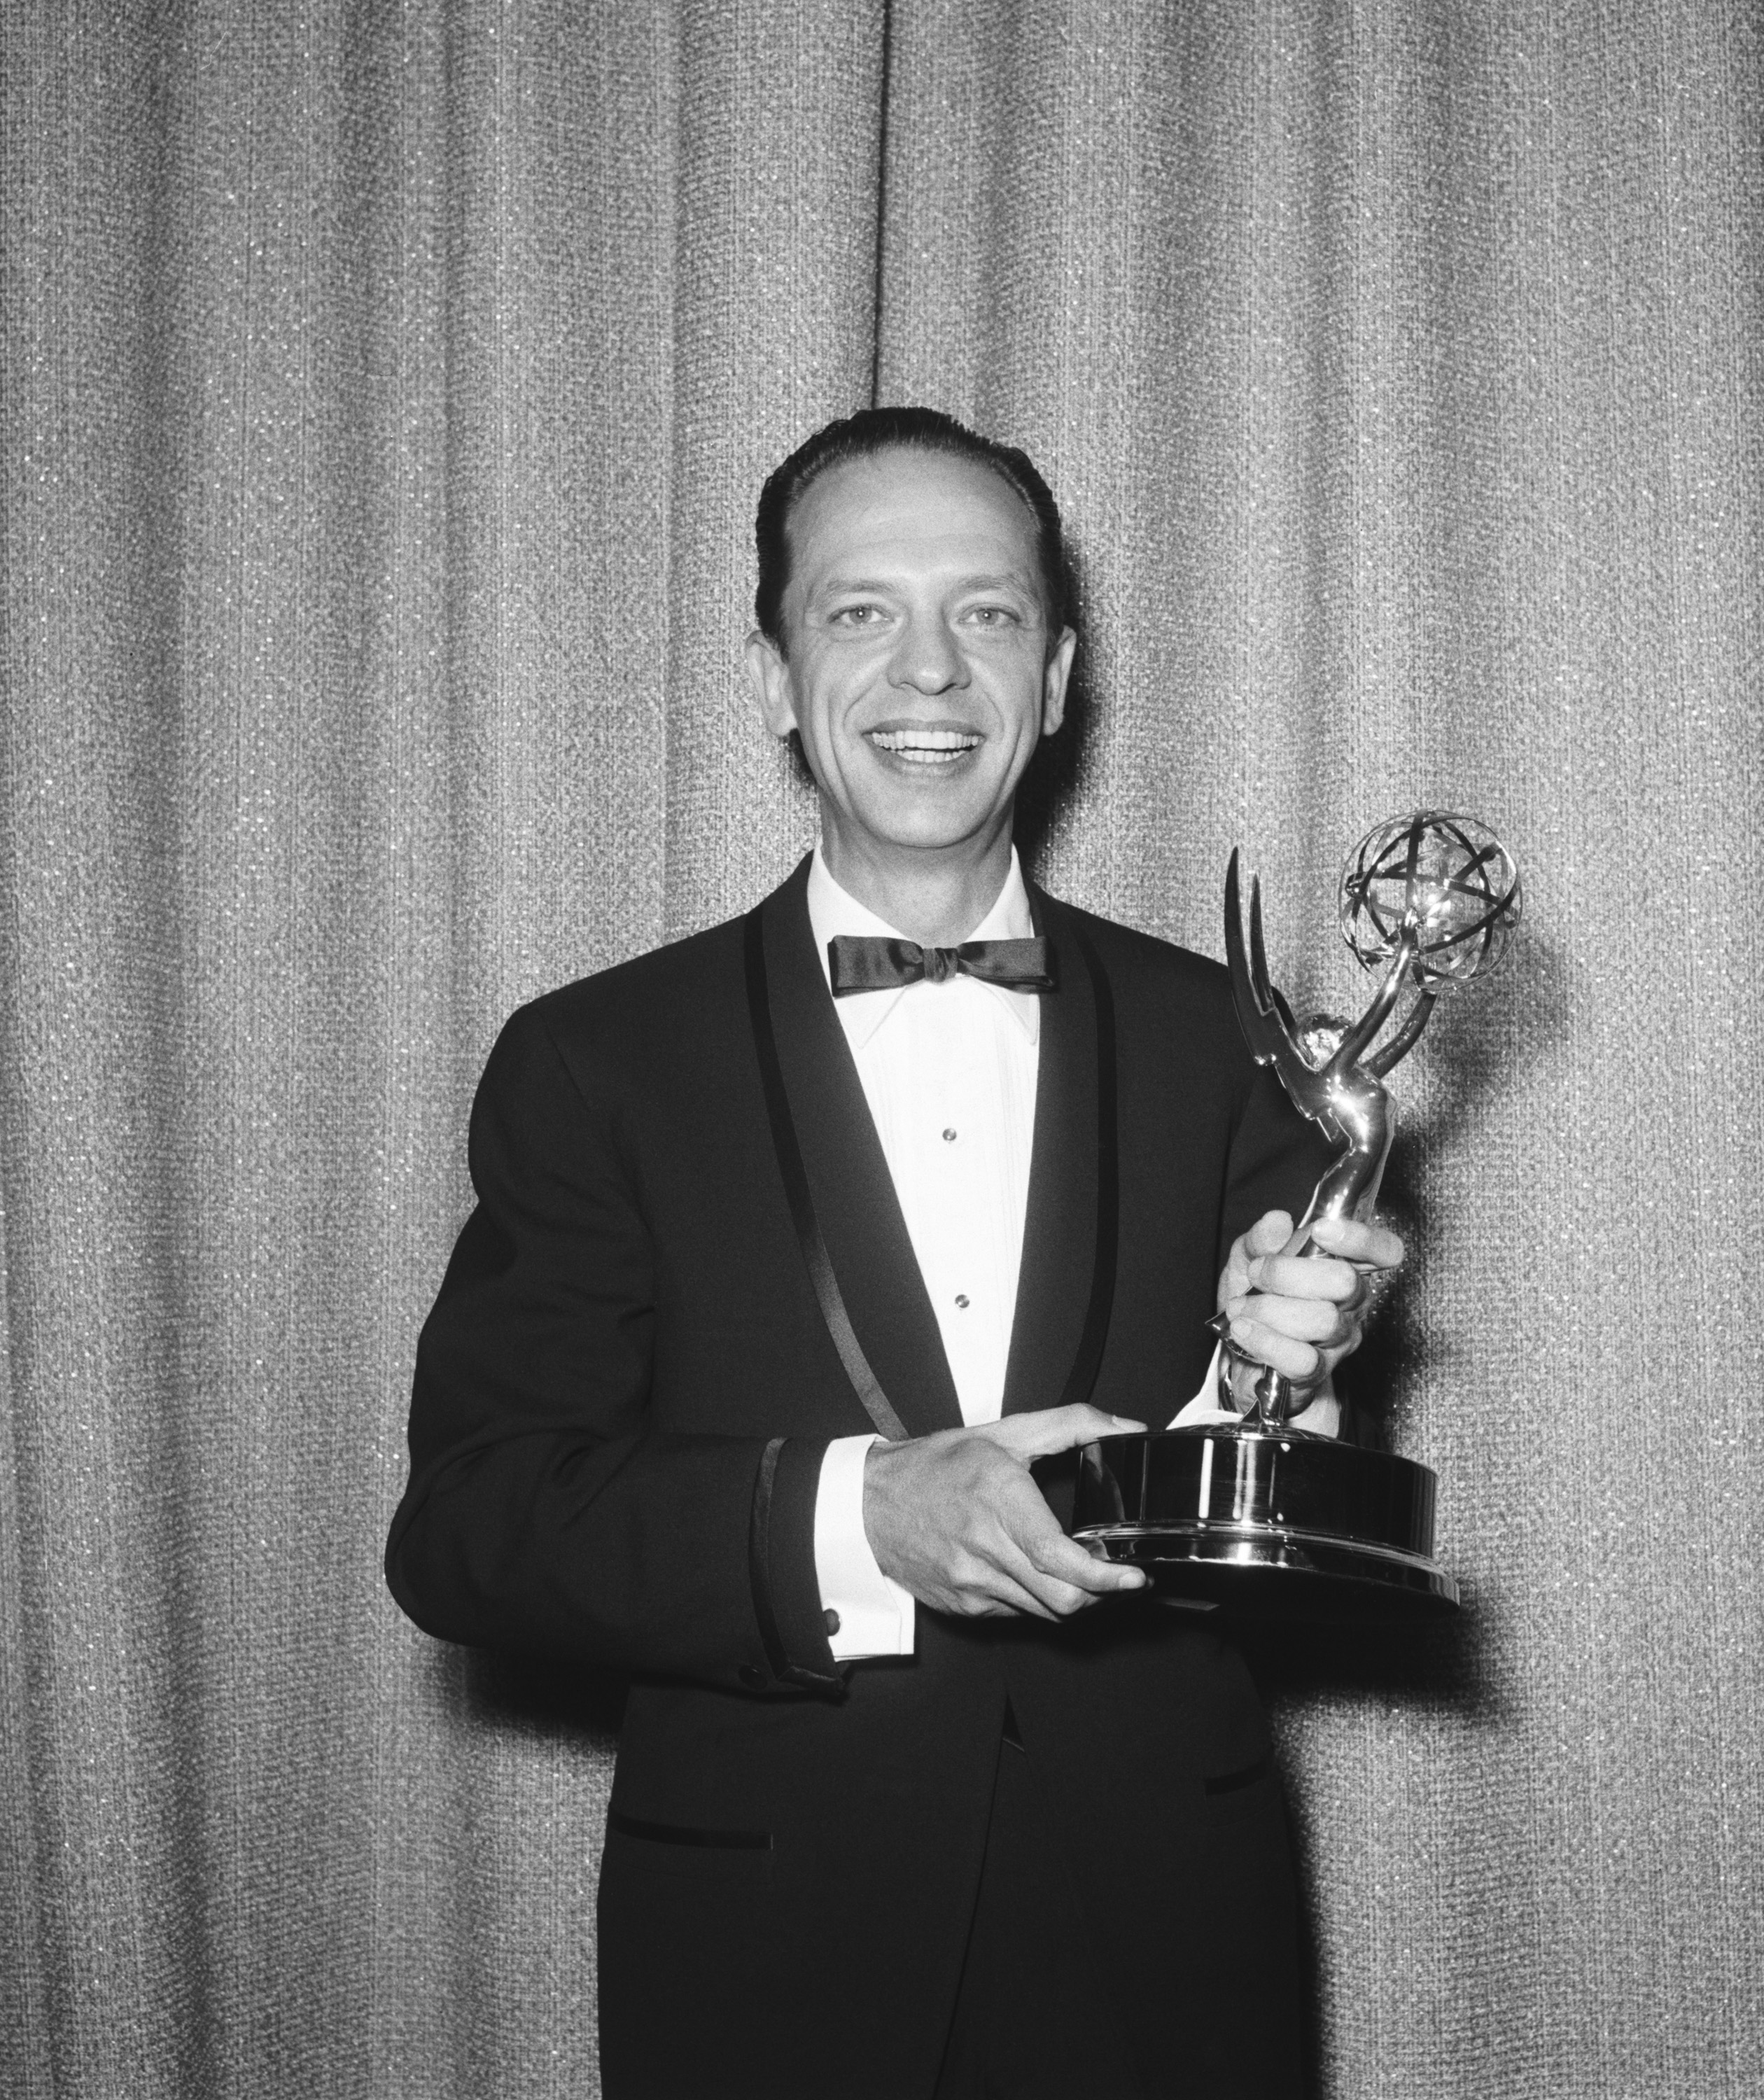 Actor Don Knotts with his Emmy trophy at the 15th Annual Primetime Emmy Awards.